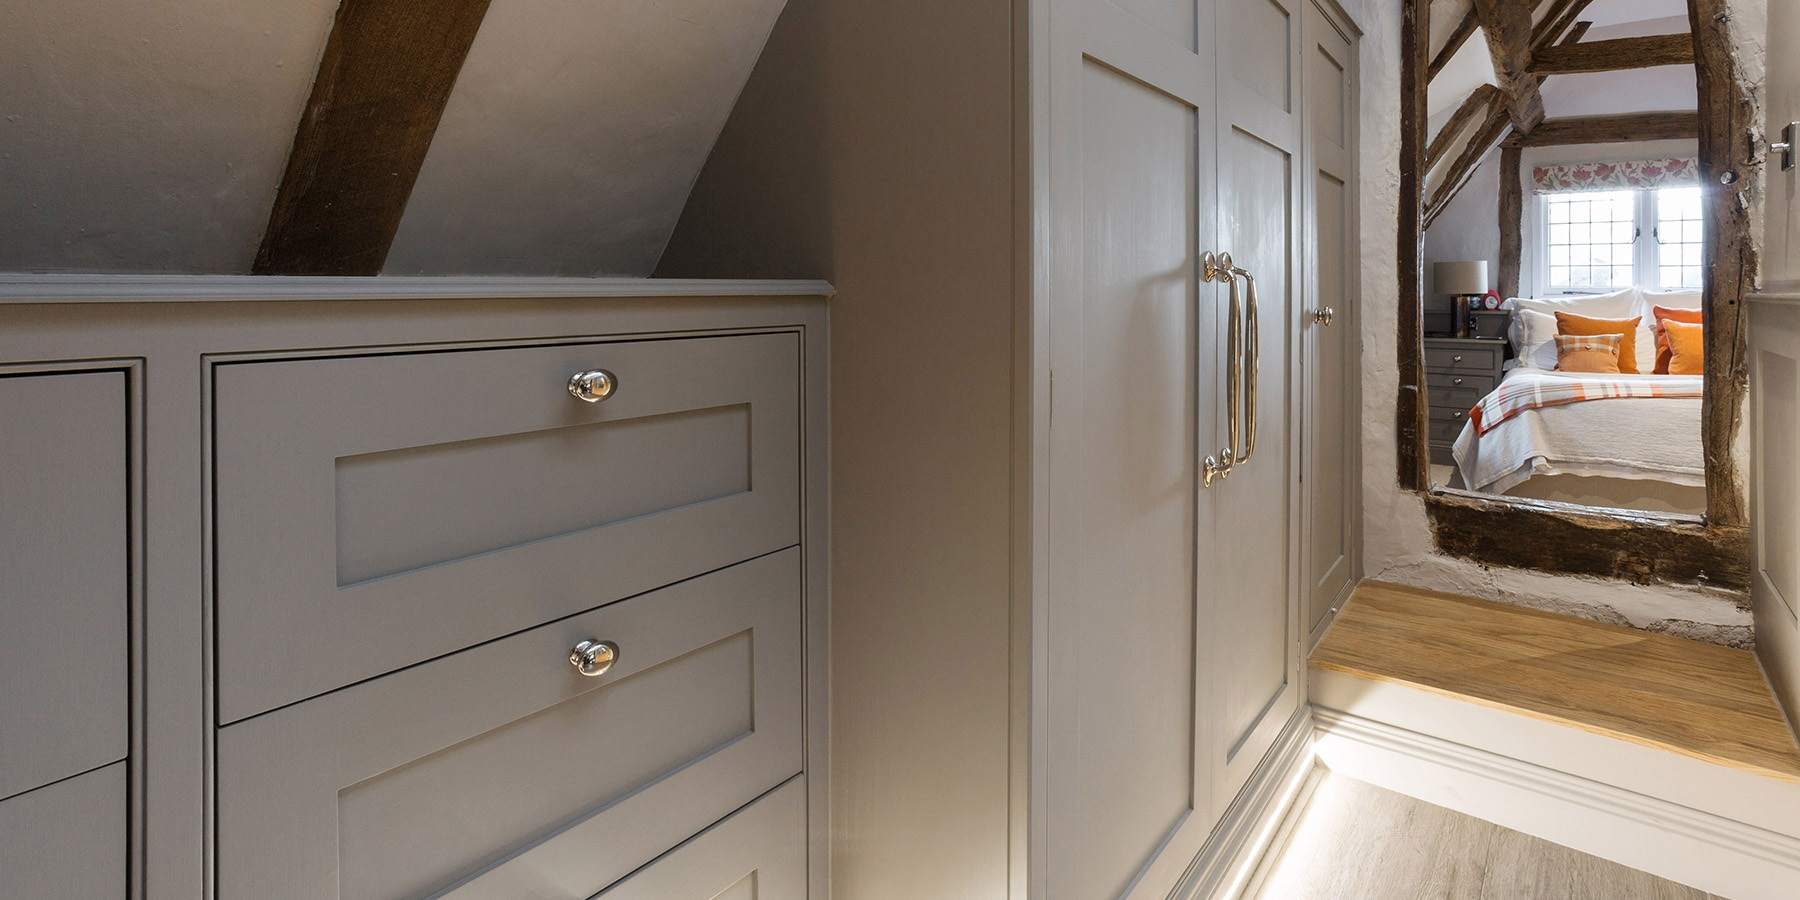 Bespoke Fitted Bedroom Furniture - Burlanes bespoke, handmade bedroom furniture.